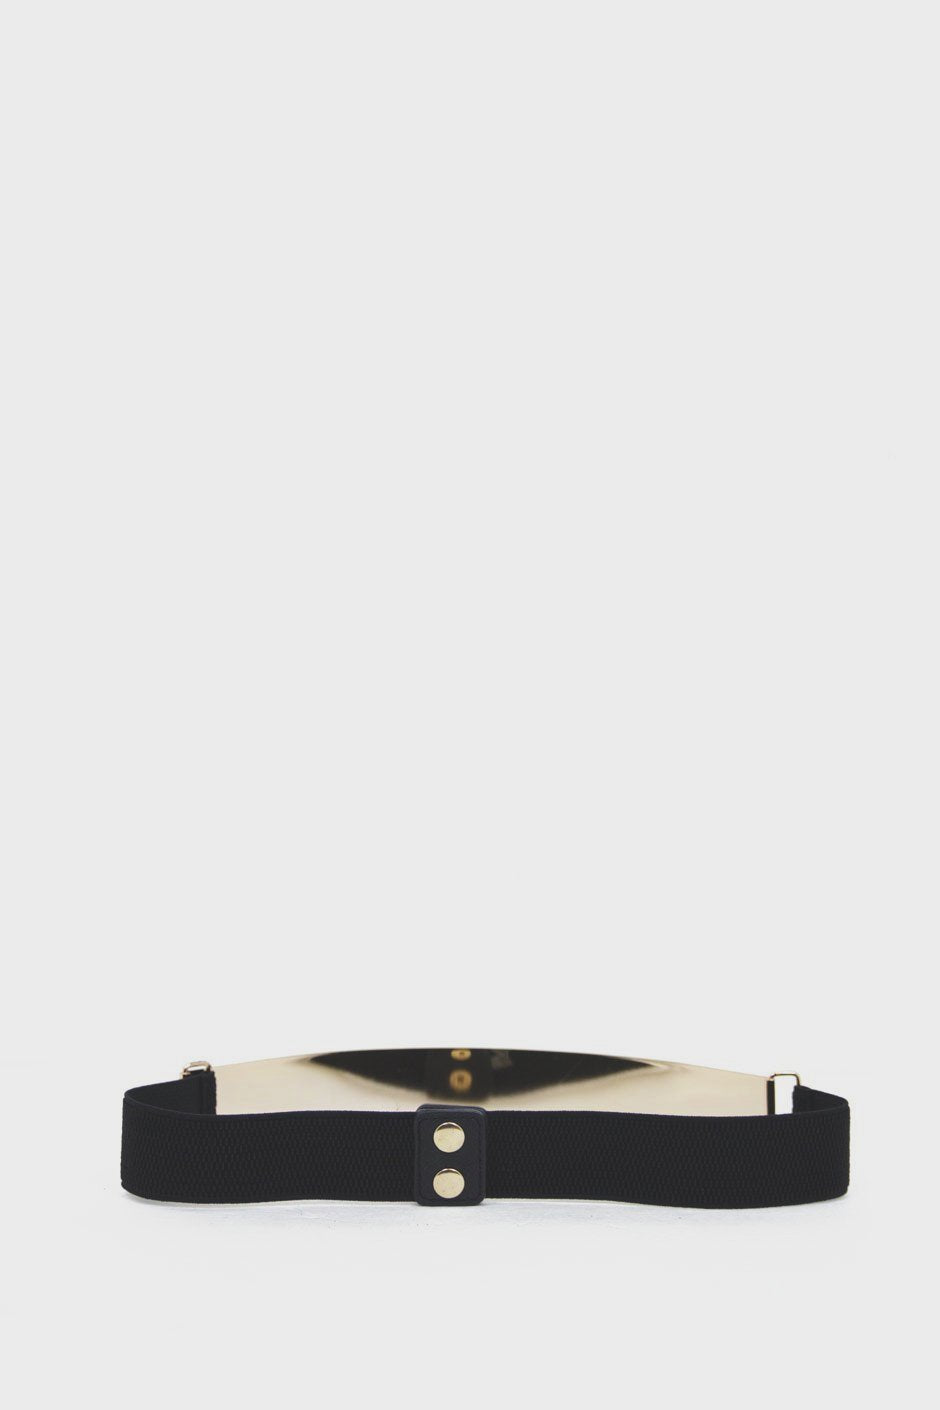 GOLD PLATED BELT - Black - Haute & Rebellious